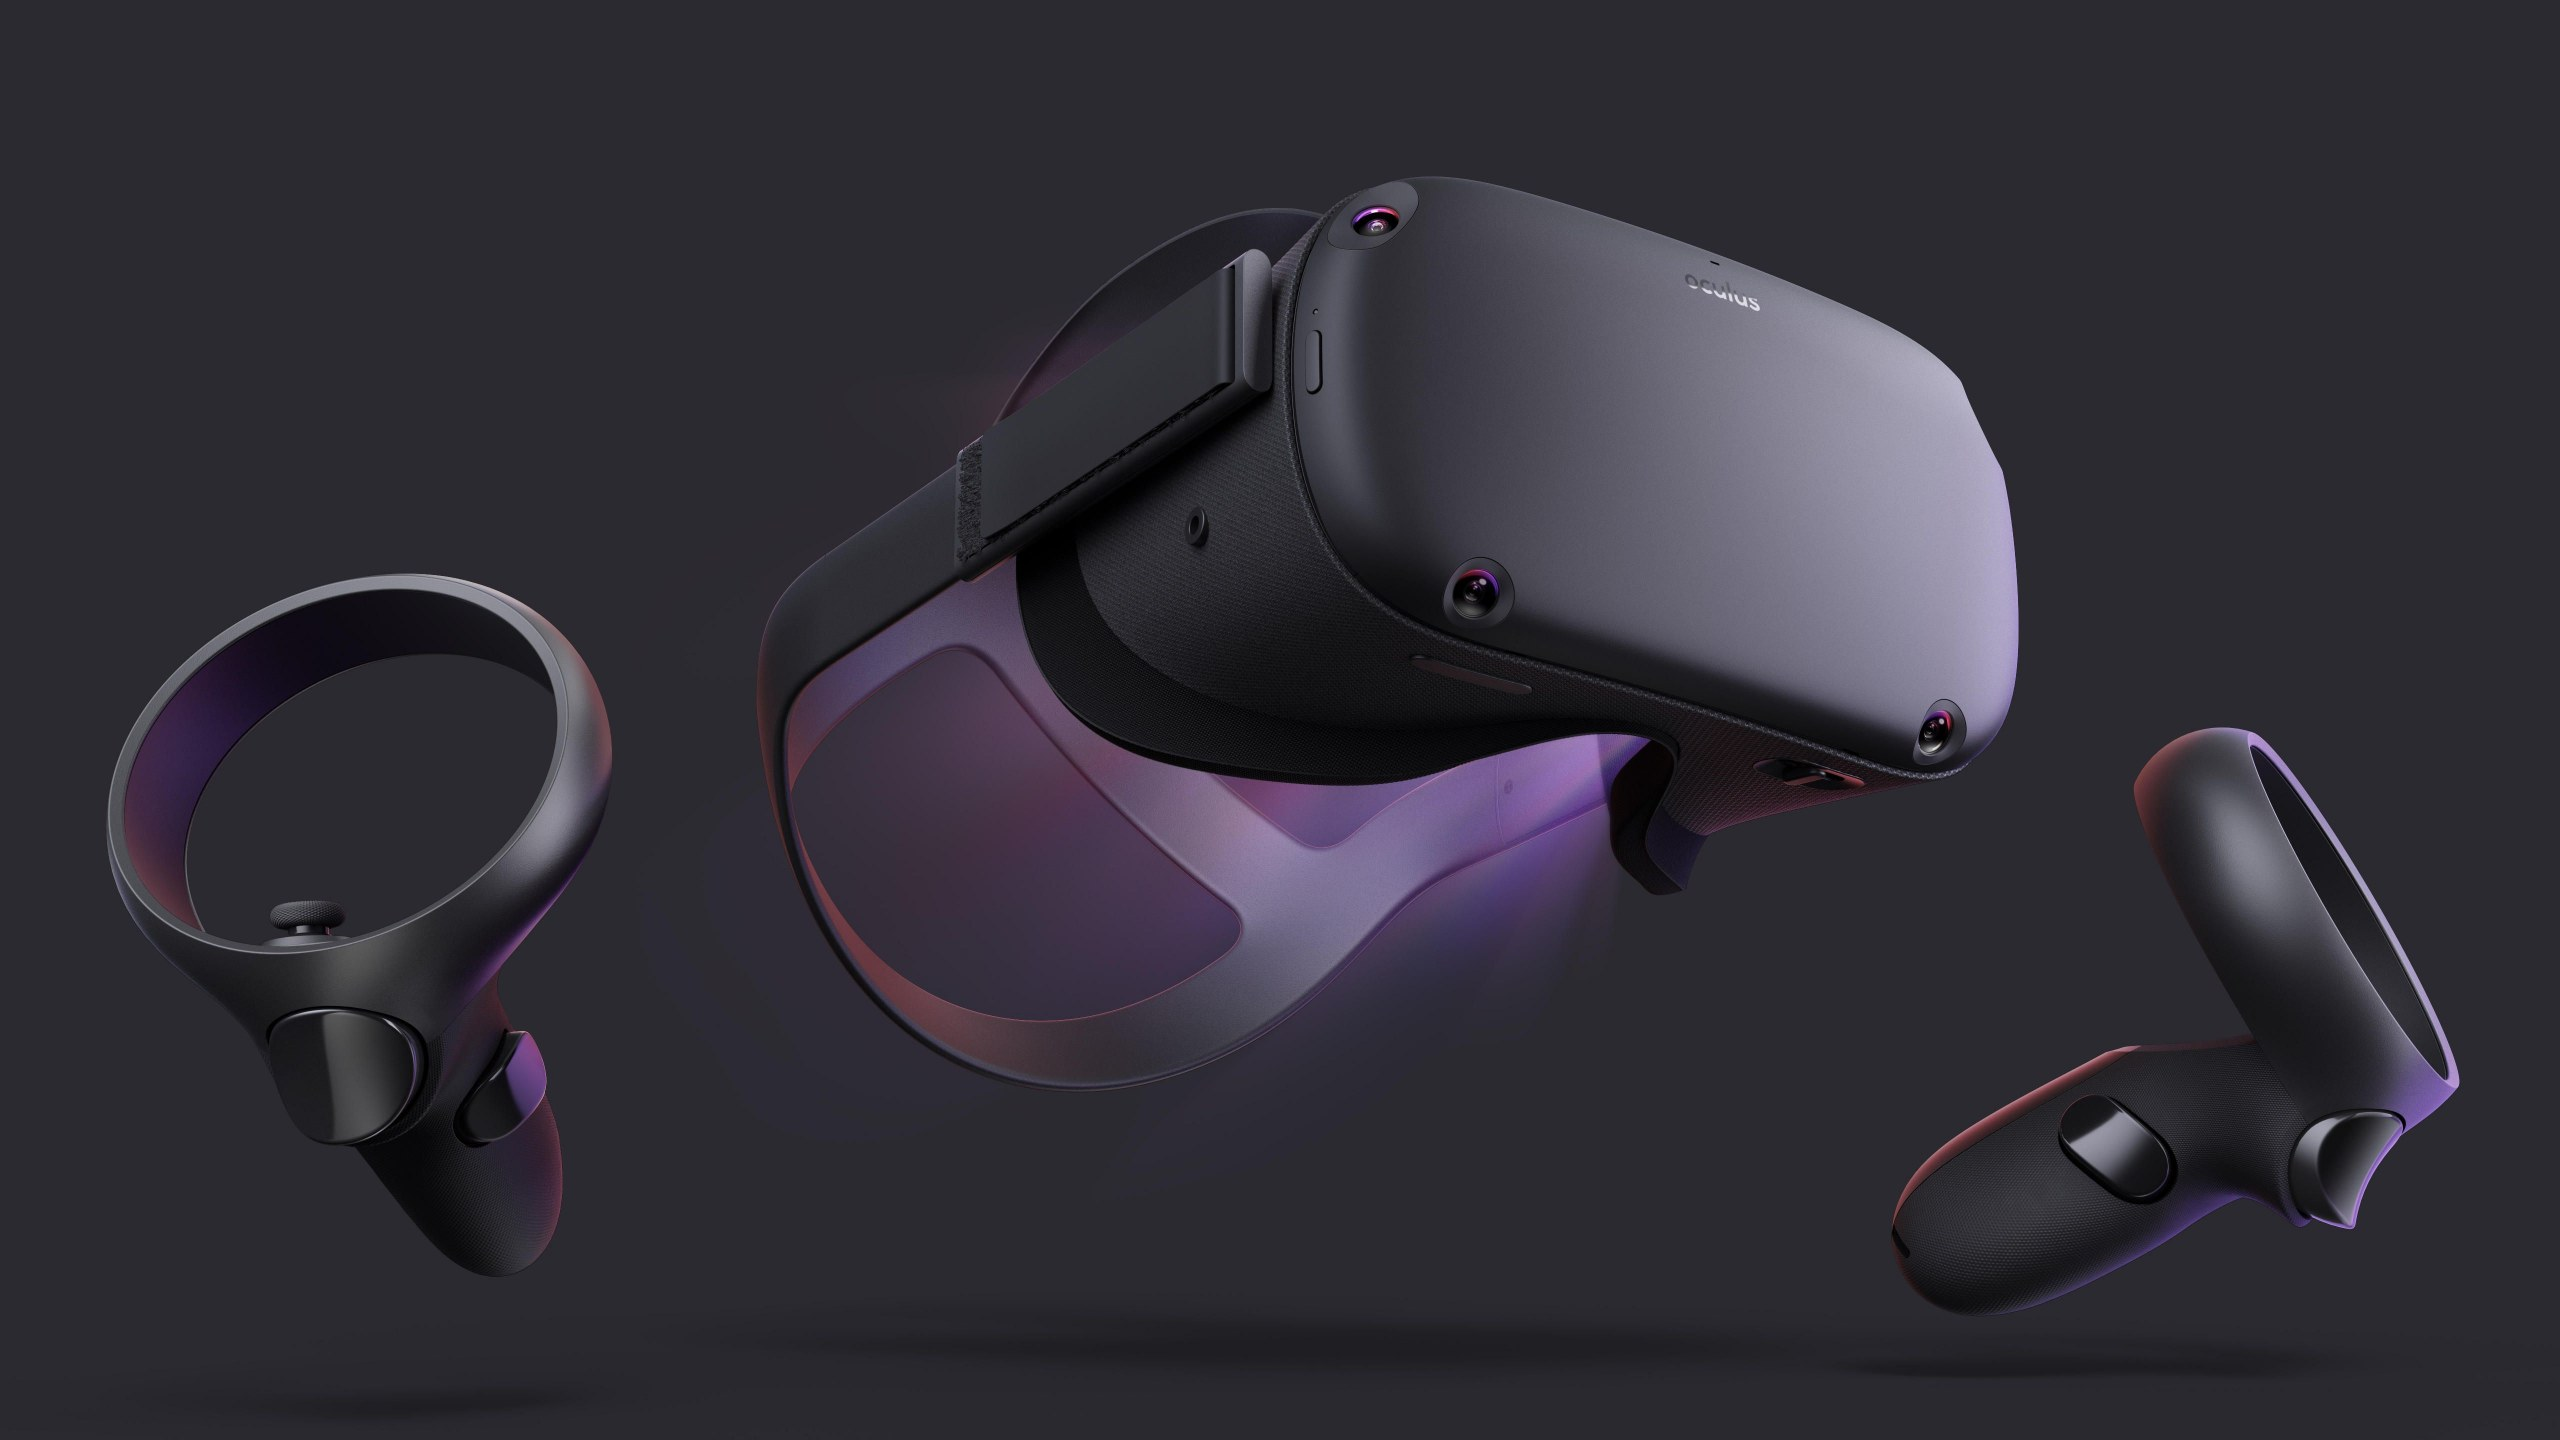 A smaller, lighter Oculus Quest with a better display is reportedly in the works